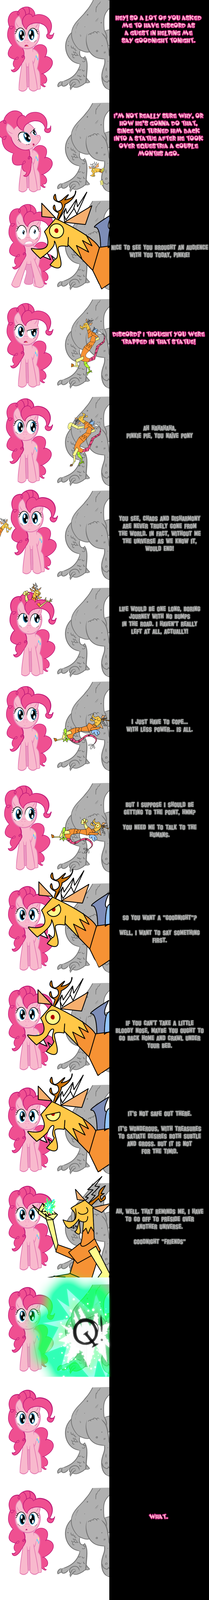 pinkie_and_discord_say___goodnight___by_undead_niklos-d4hzkky.png